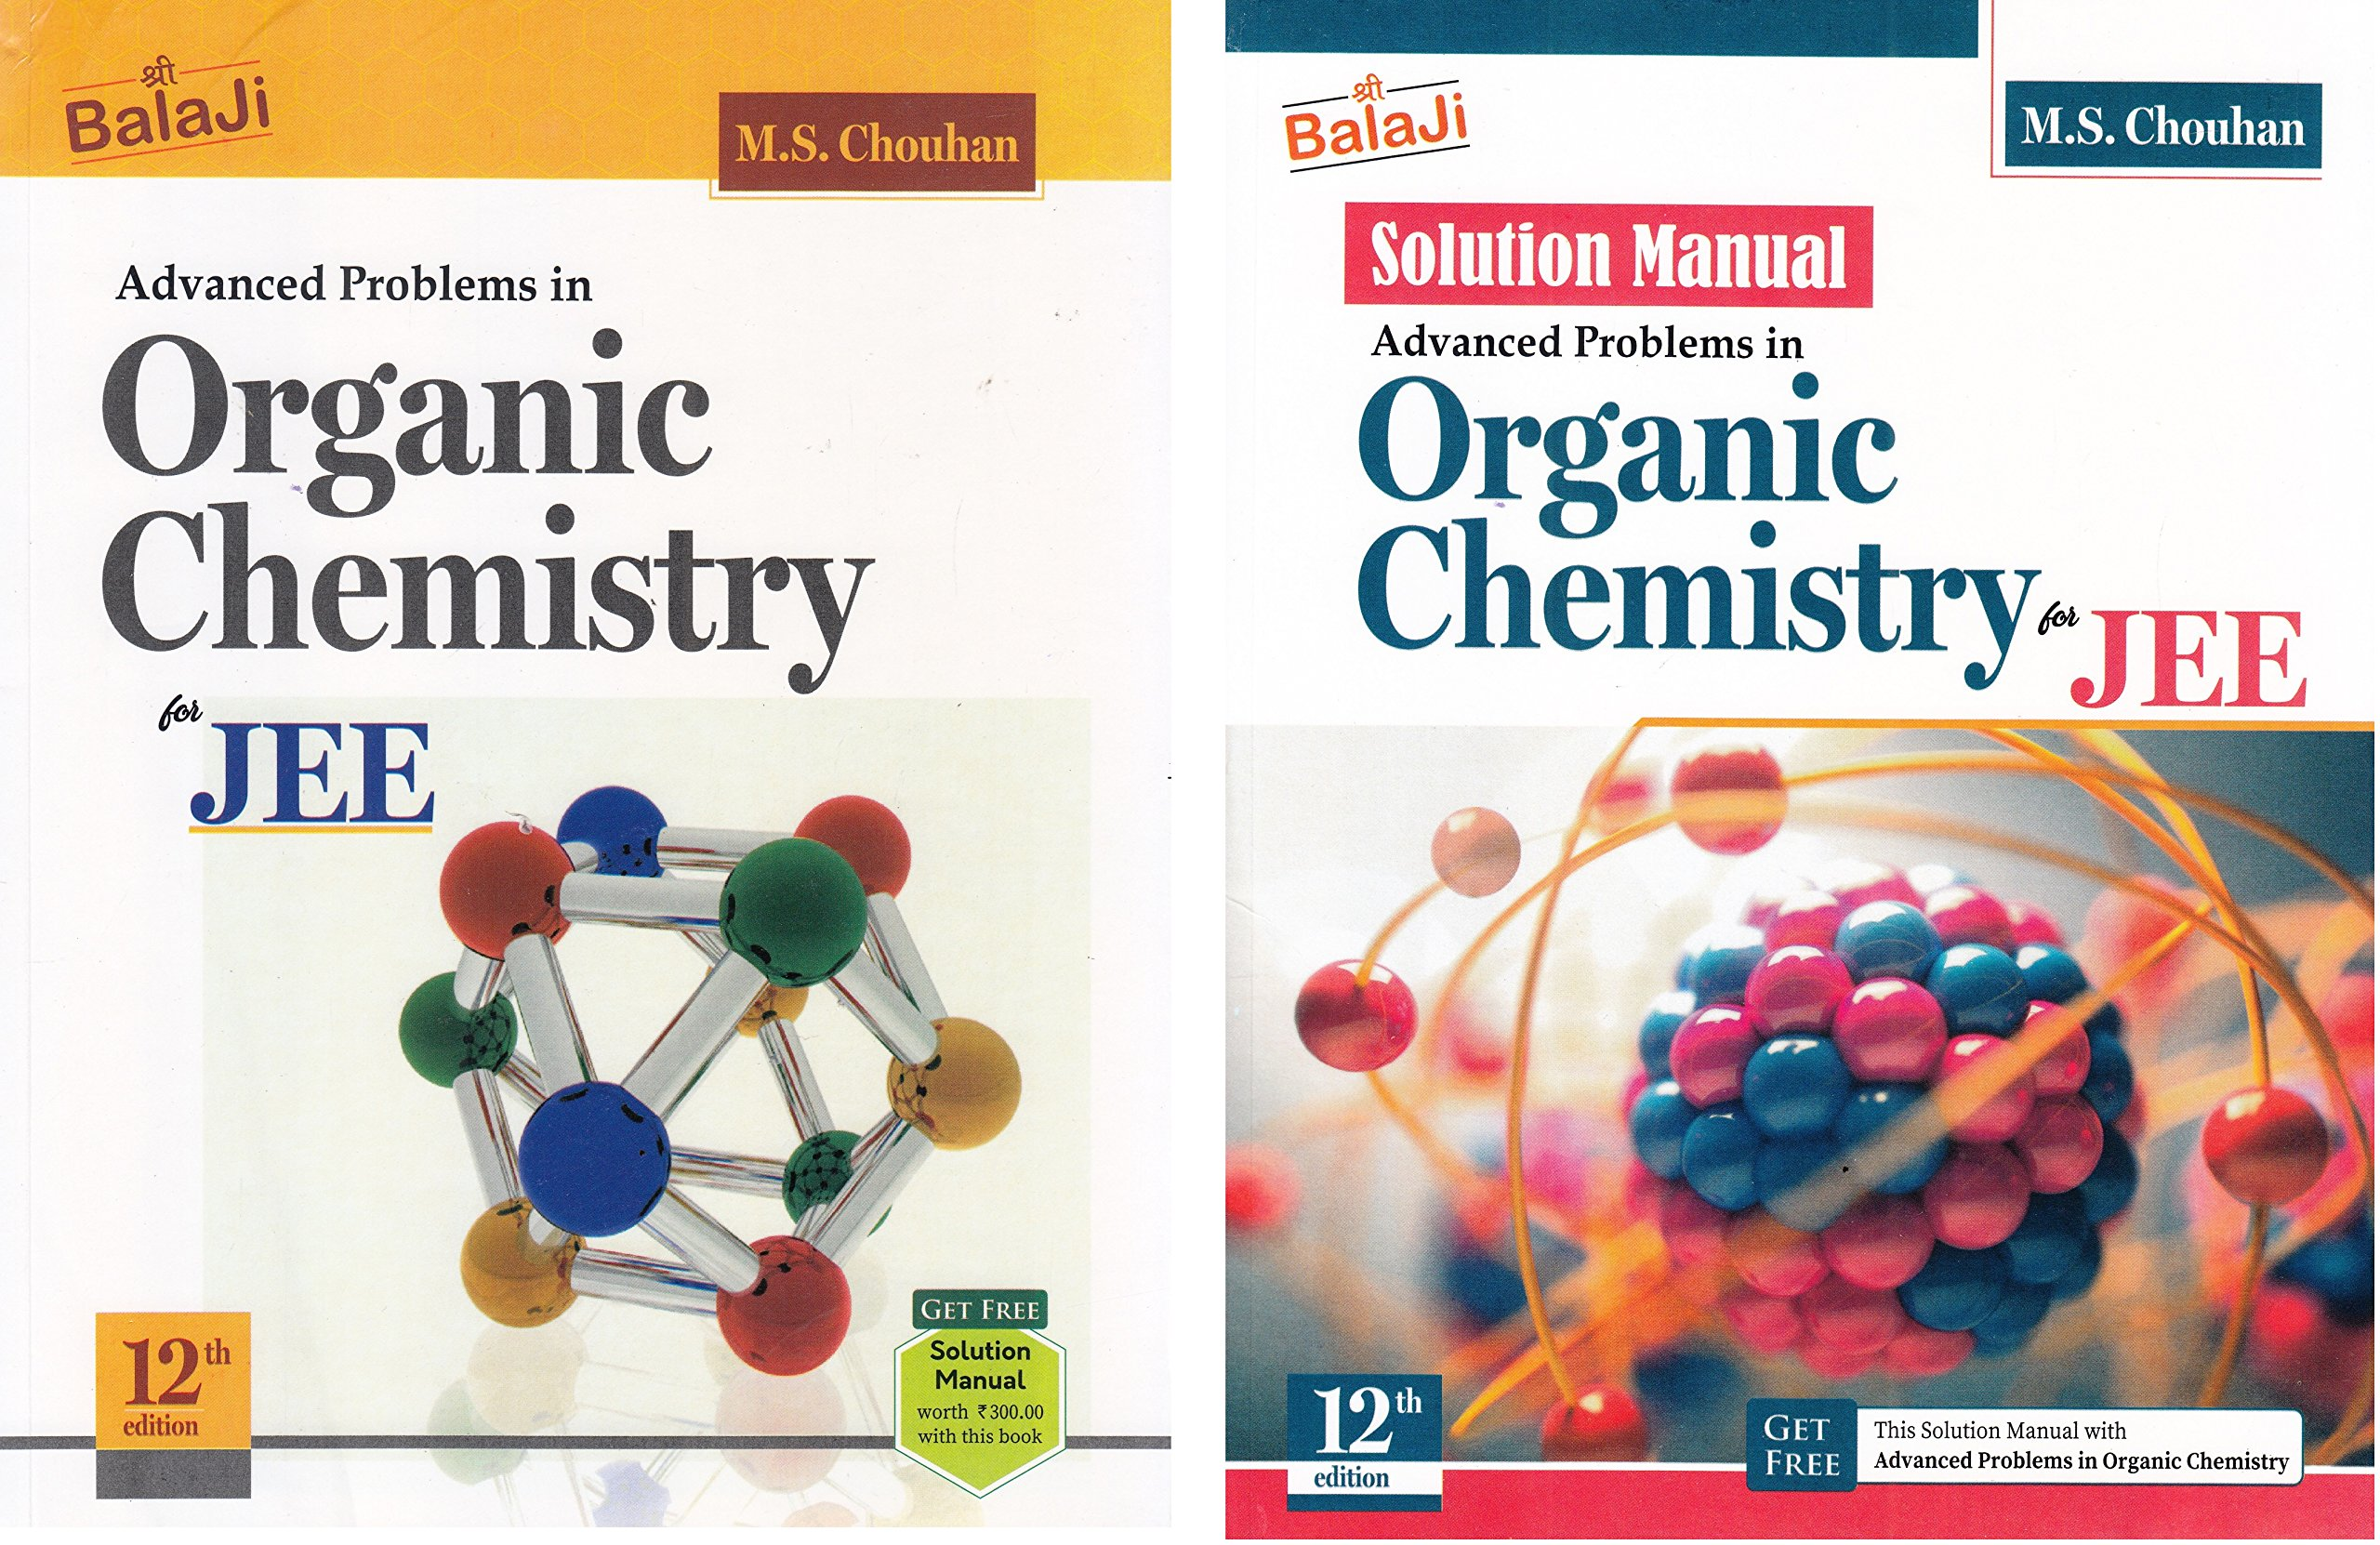 buy advanced problems in organic chemistry for jee with solution rh amazon in Organic Chemistry Perodic Table Organic Chemistry Perodic Table